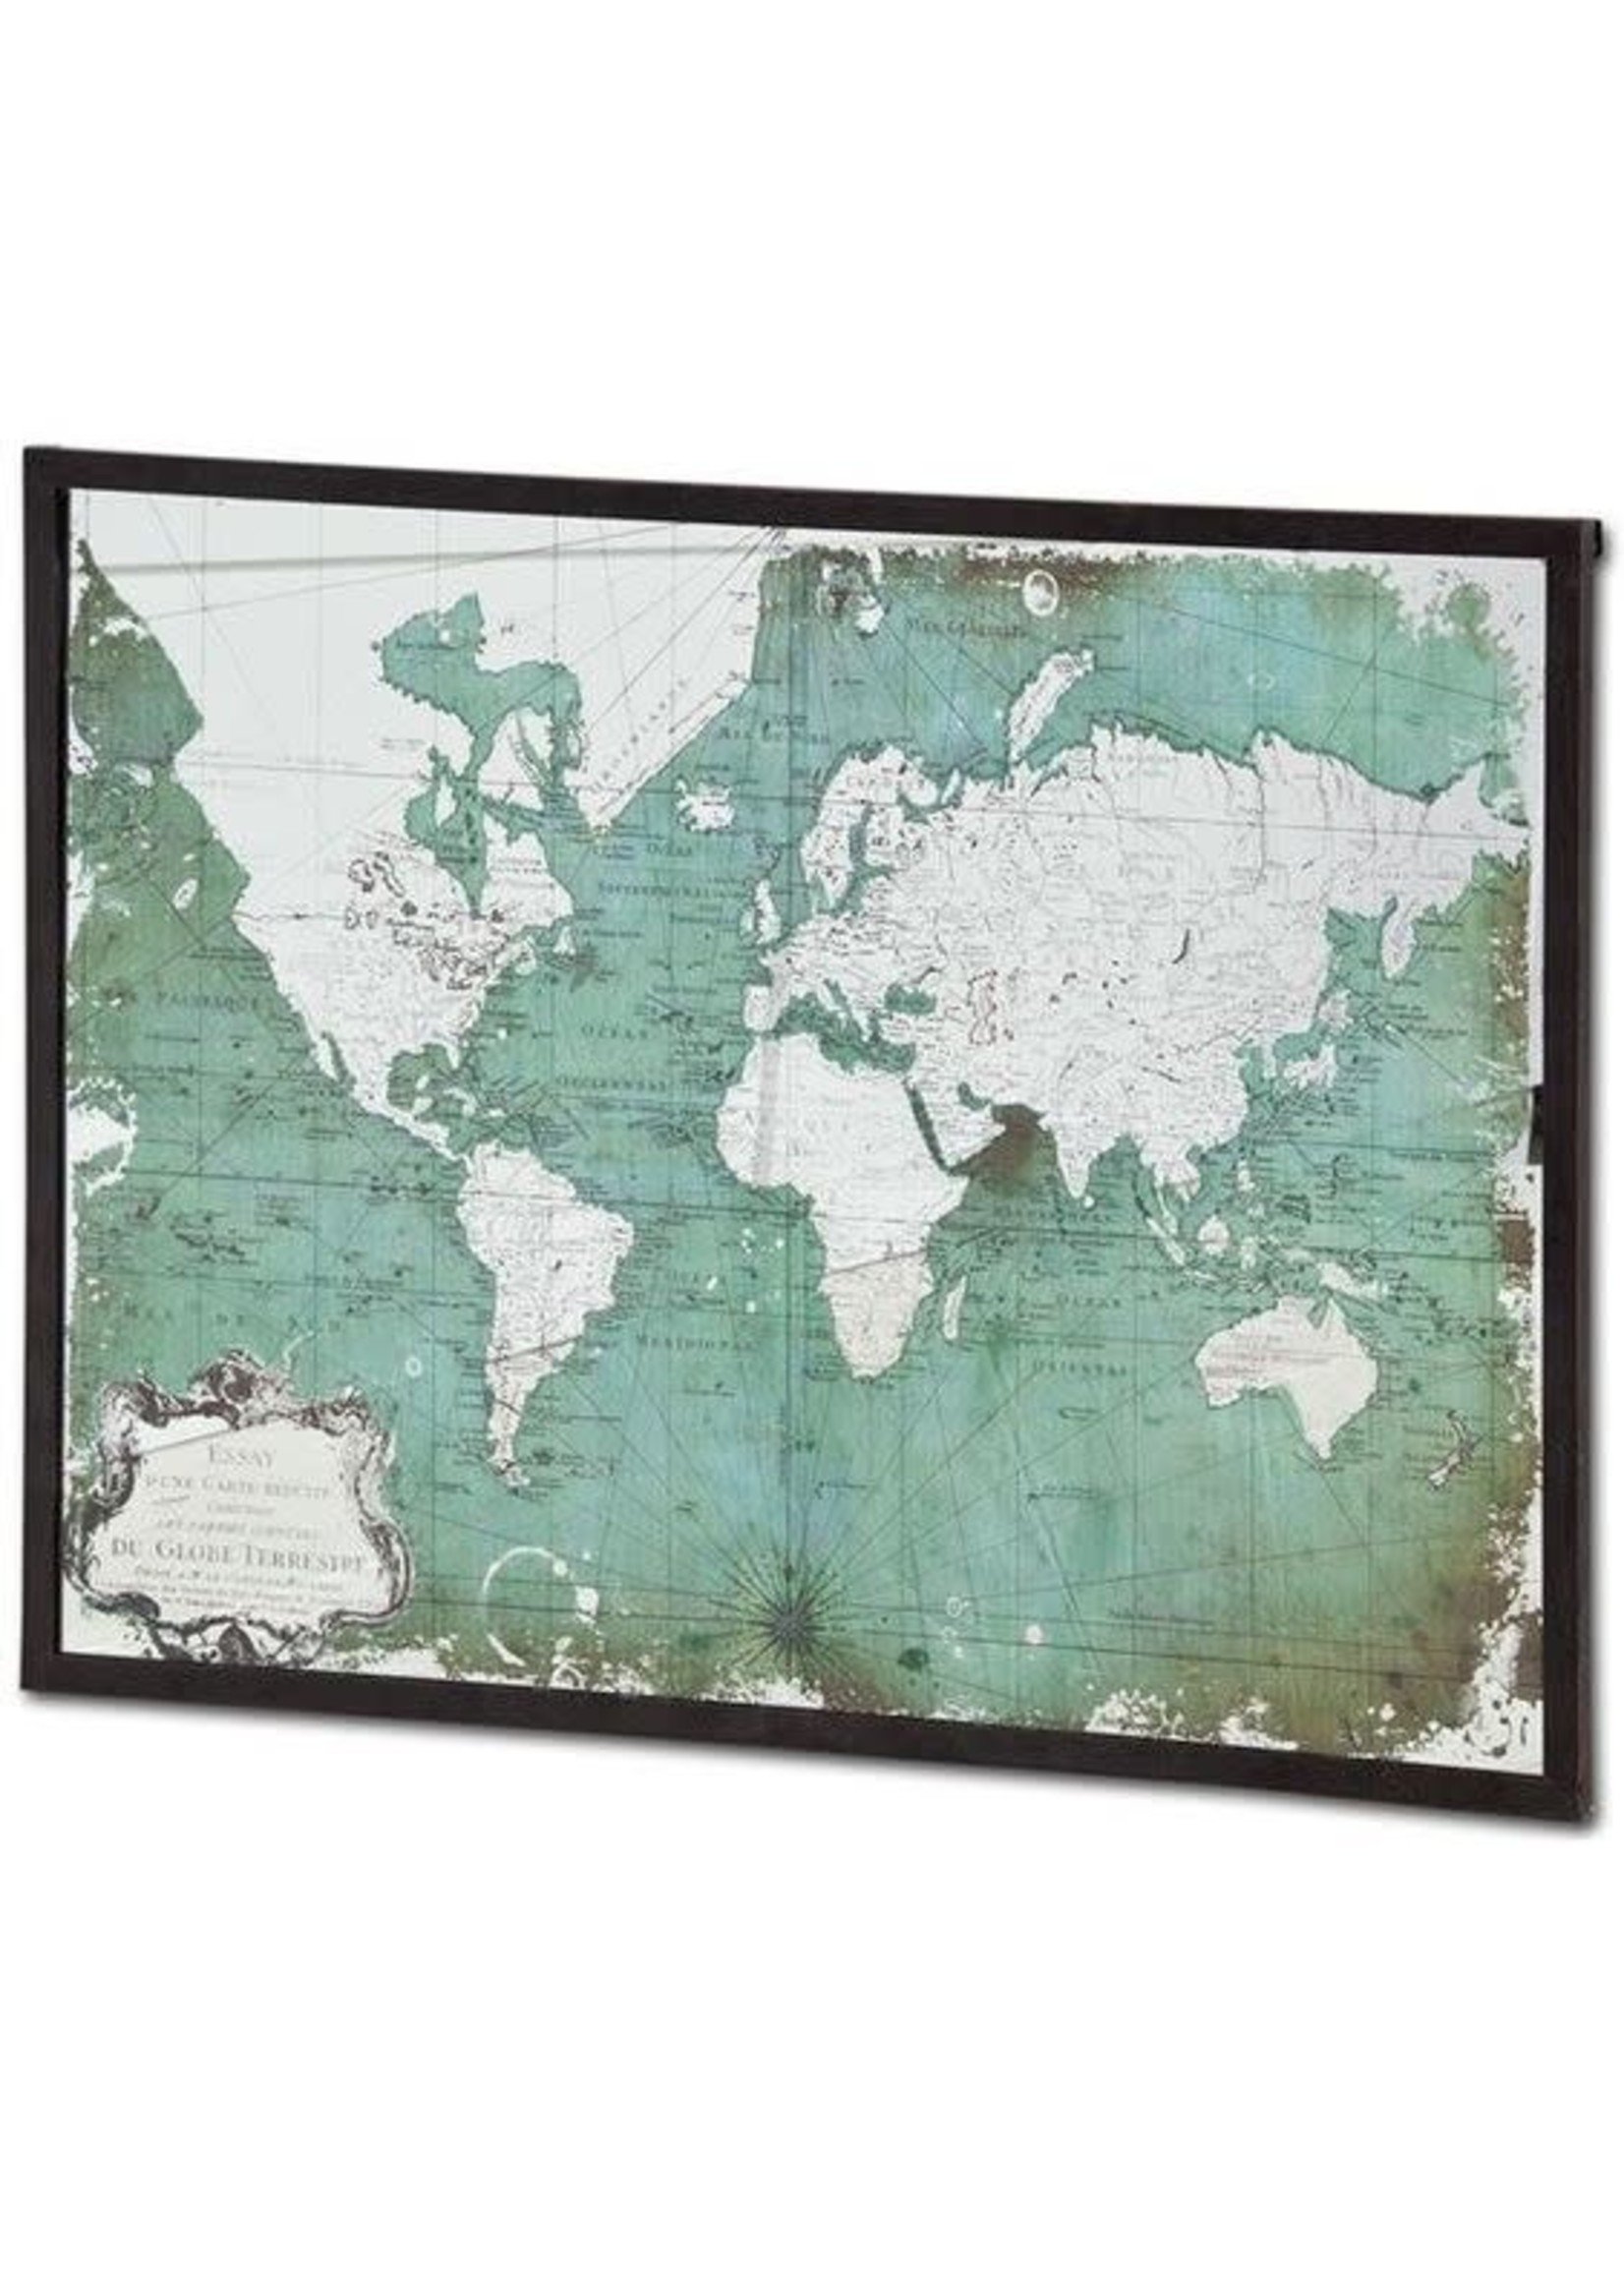 PROVIDENCIA ANTIQUED MAP OF THE WORLD